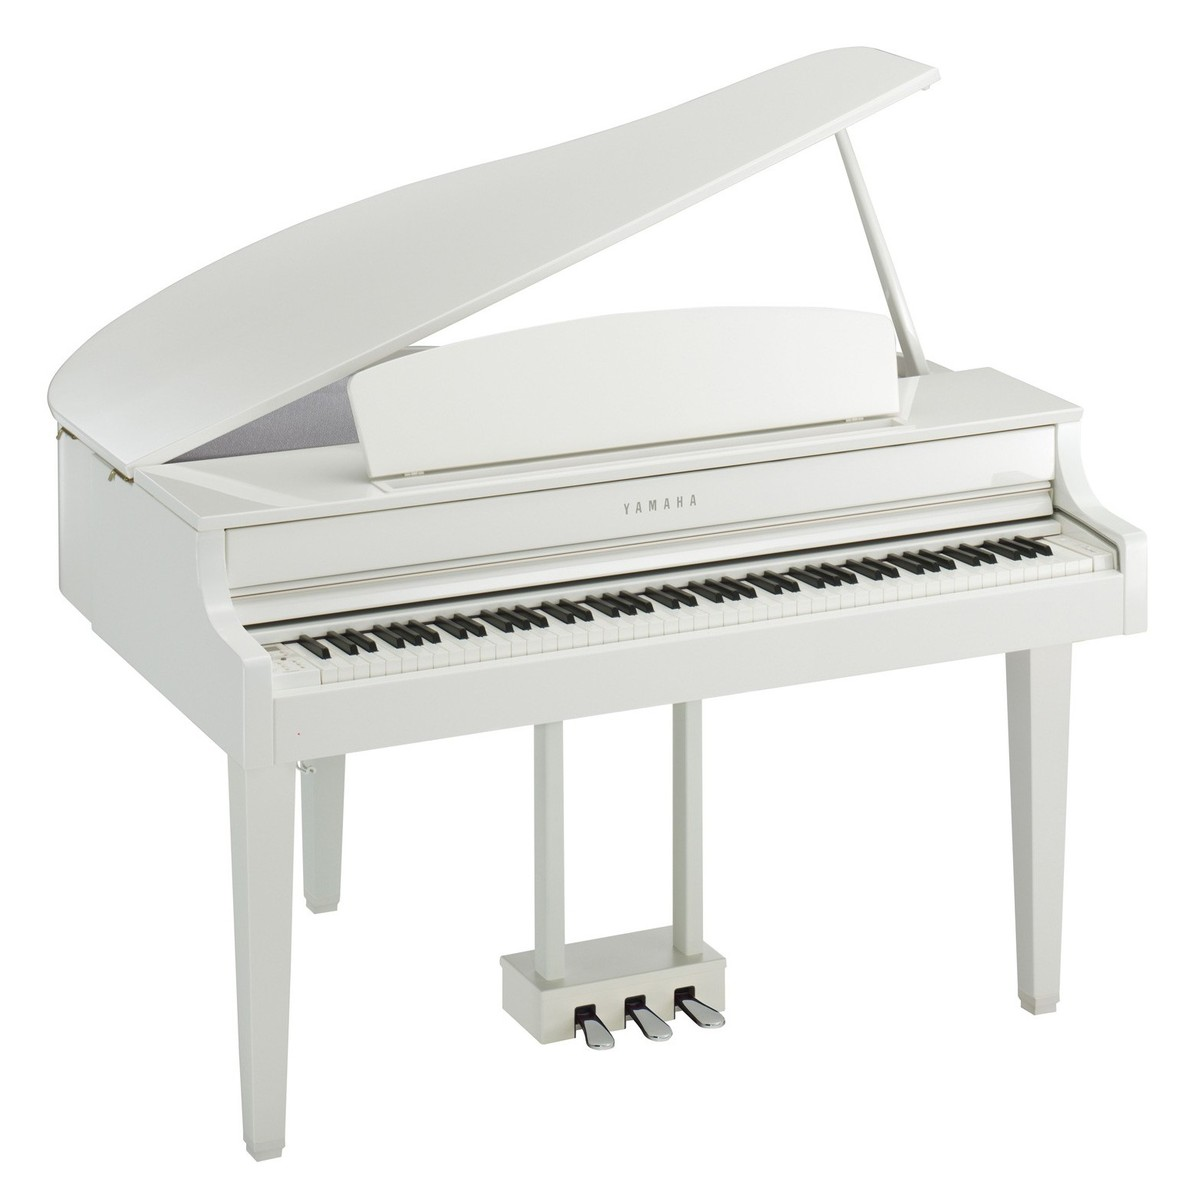 yamaha clp 665 digital grand piano polished white at gear4music. Black Bedroom Furniture Sets. Home Design Ideas